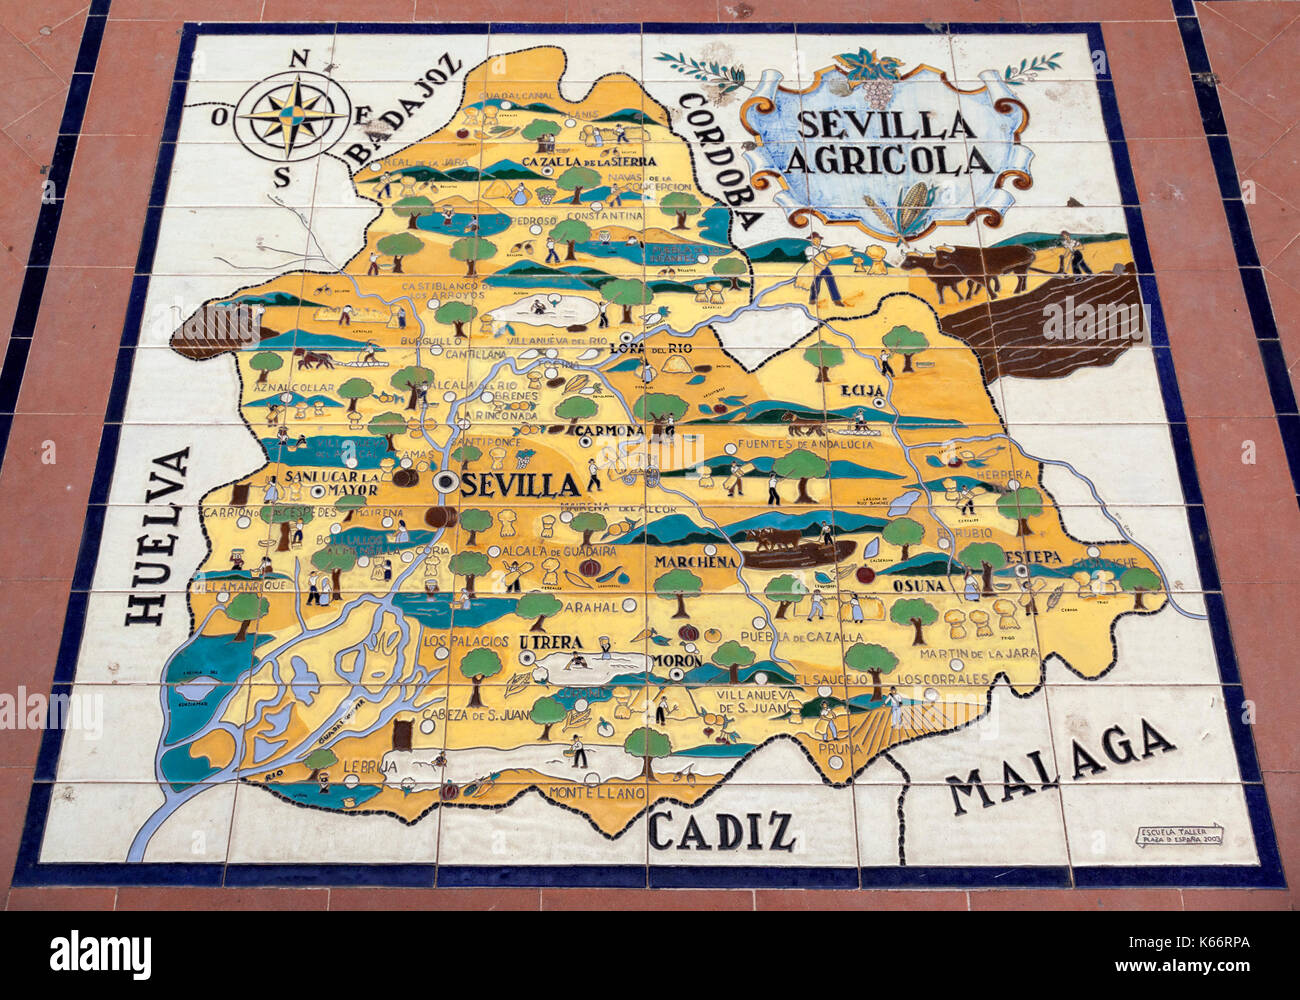 Map of the province of Seville in Plaza de Espana, Seville, Andalusia, Spain - Stock Image